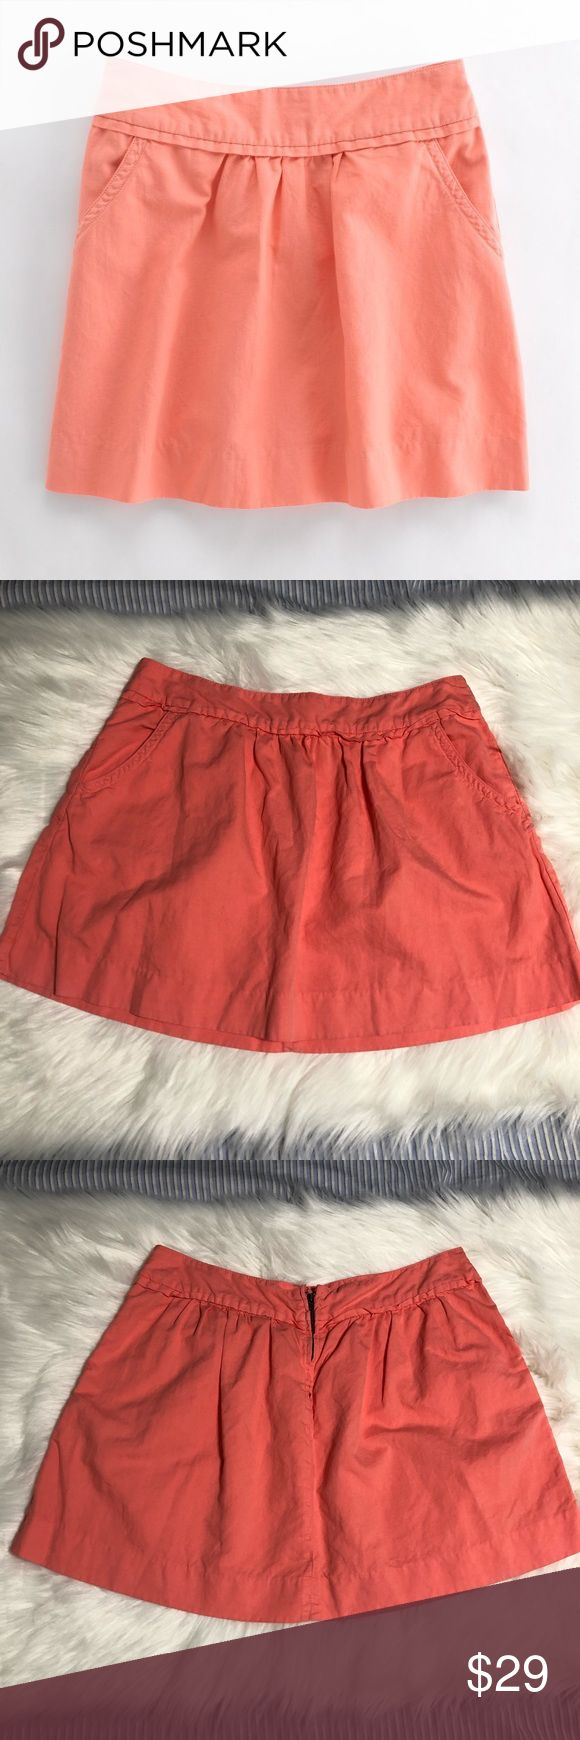 "J. Crew Cotton Linen Cavalry Skirt Sz 10 Euc! Beautiful salmon colored cotton linen blend j crew cavalry skirt. Size 10. Pockets on both sides. Zip and hook closure.   Measurements taken flat (approx):  Waist: 17""  Hips: 22"" Length: 16"" J. Crew Skirts"